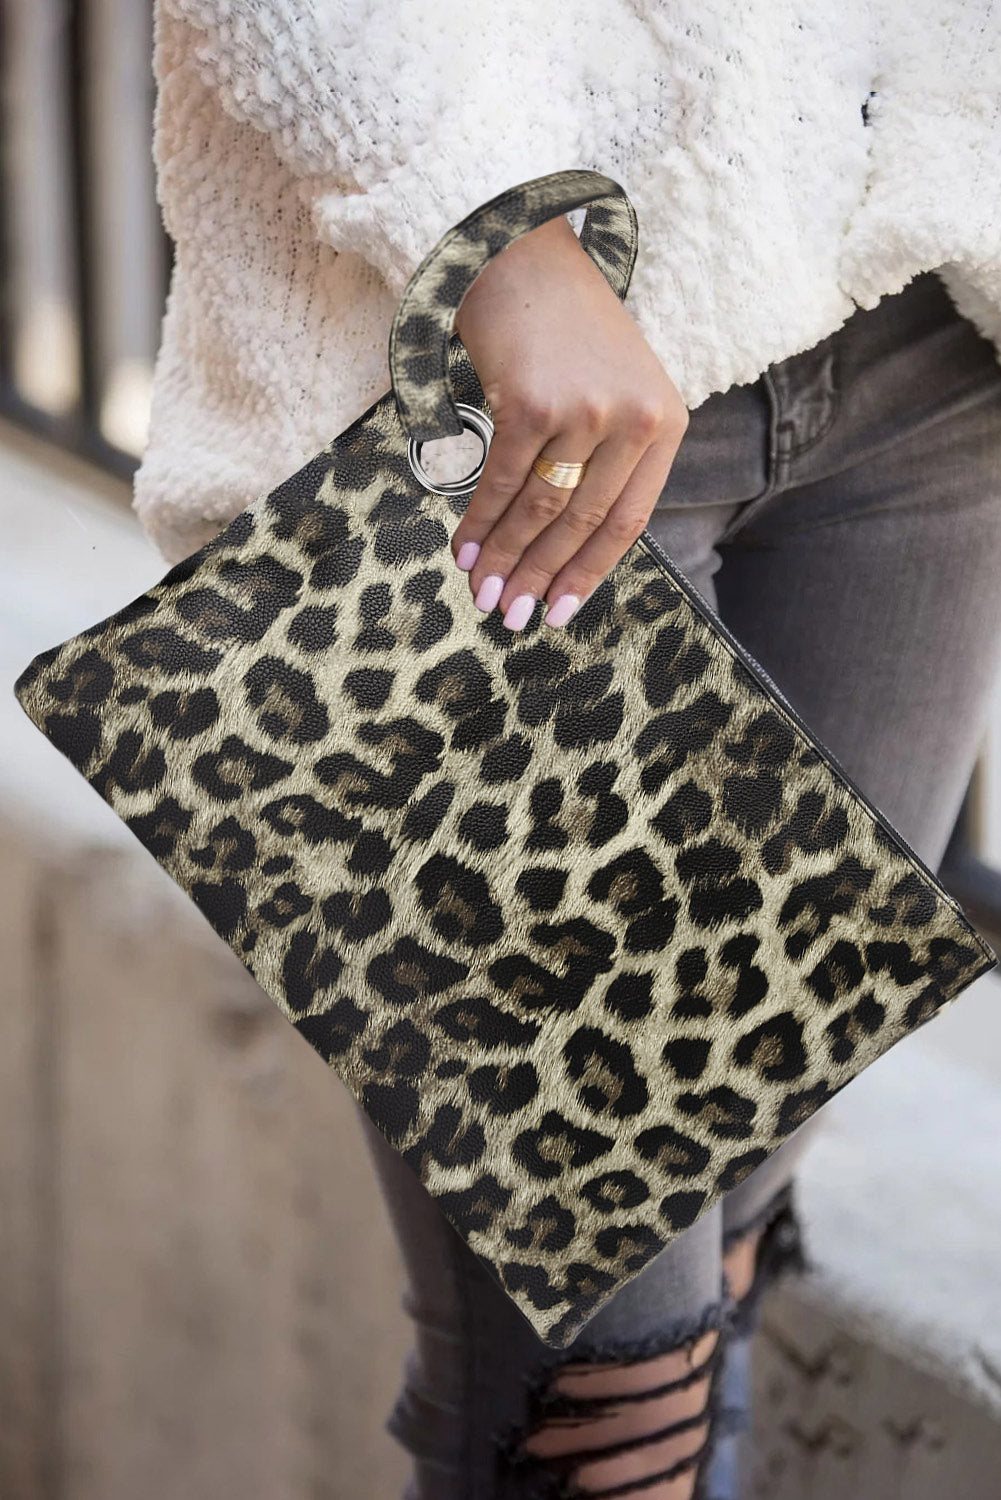 Khaki Trendy Leopard Clutch Bags Discount Designer Fashion Clothes Shoes Bags Women Men Kids Children Black Owned Business